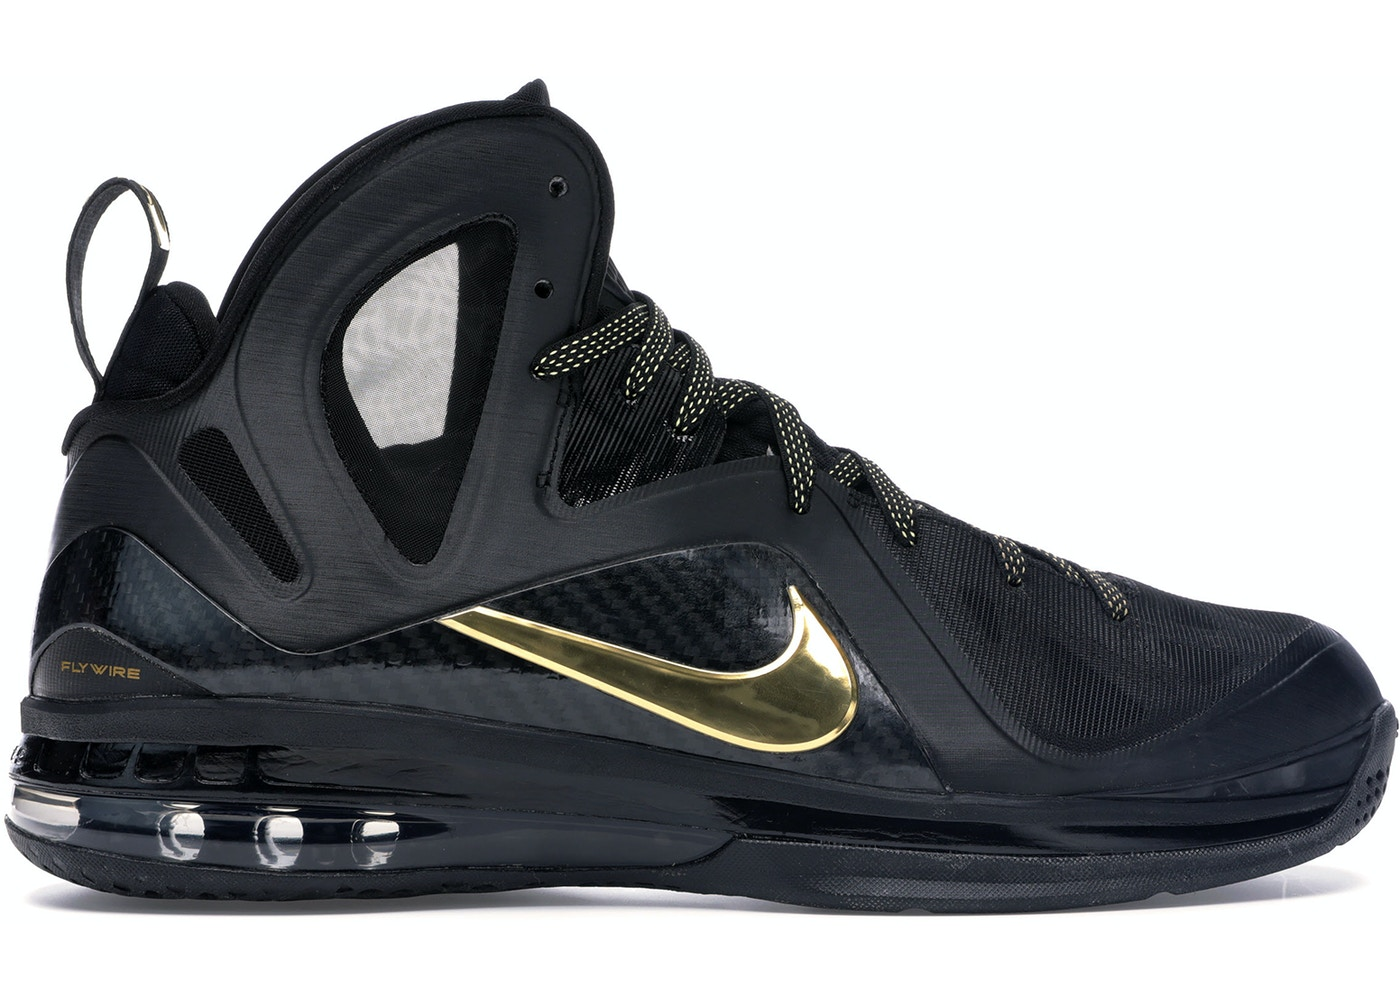 a9b086ce0c03 Nike LeBron 9 Shoes - New Lowest Asks